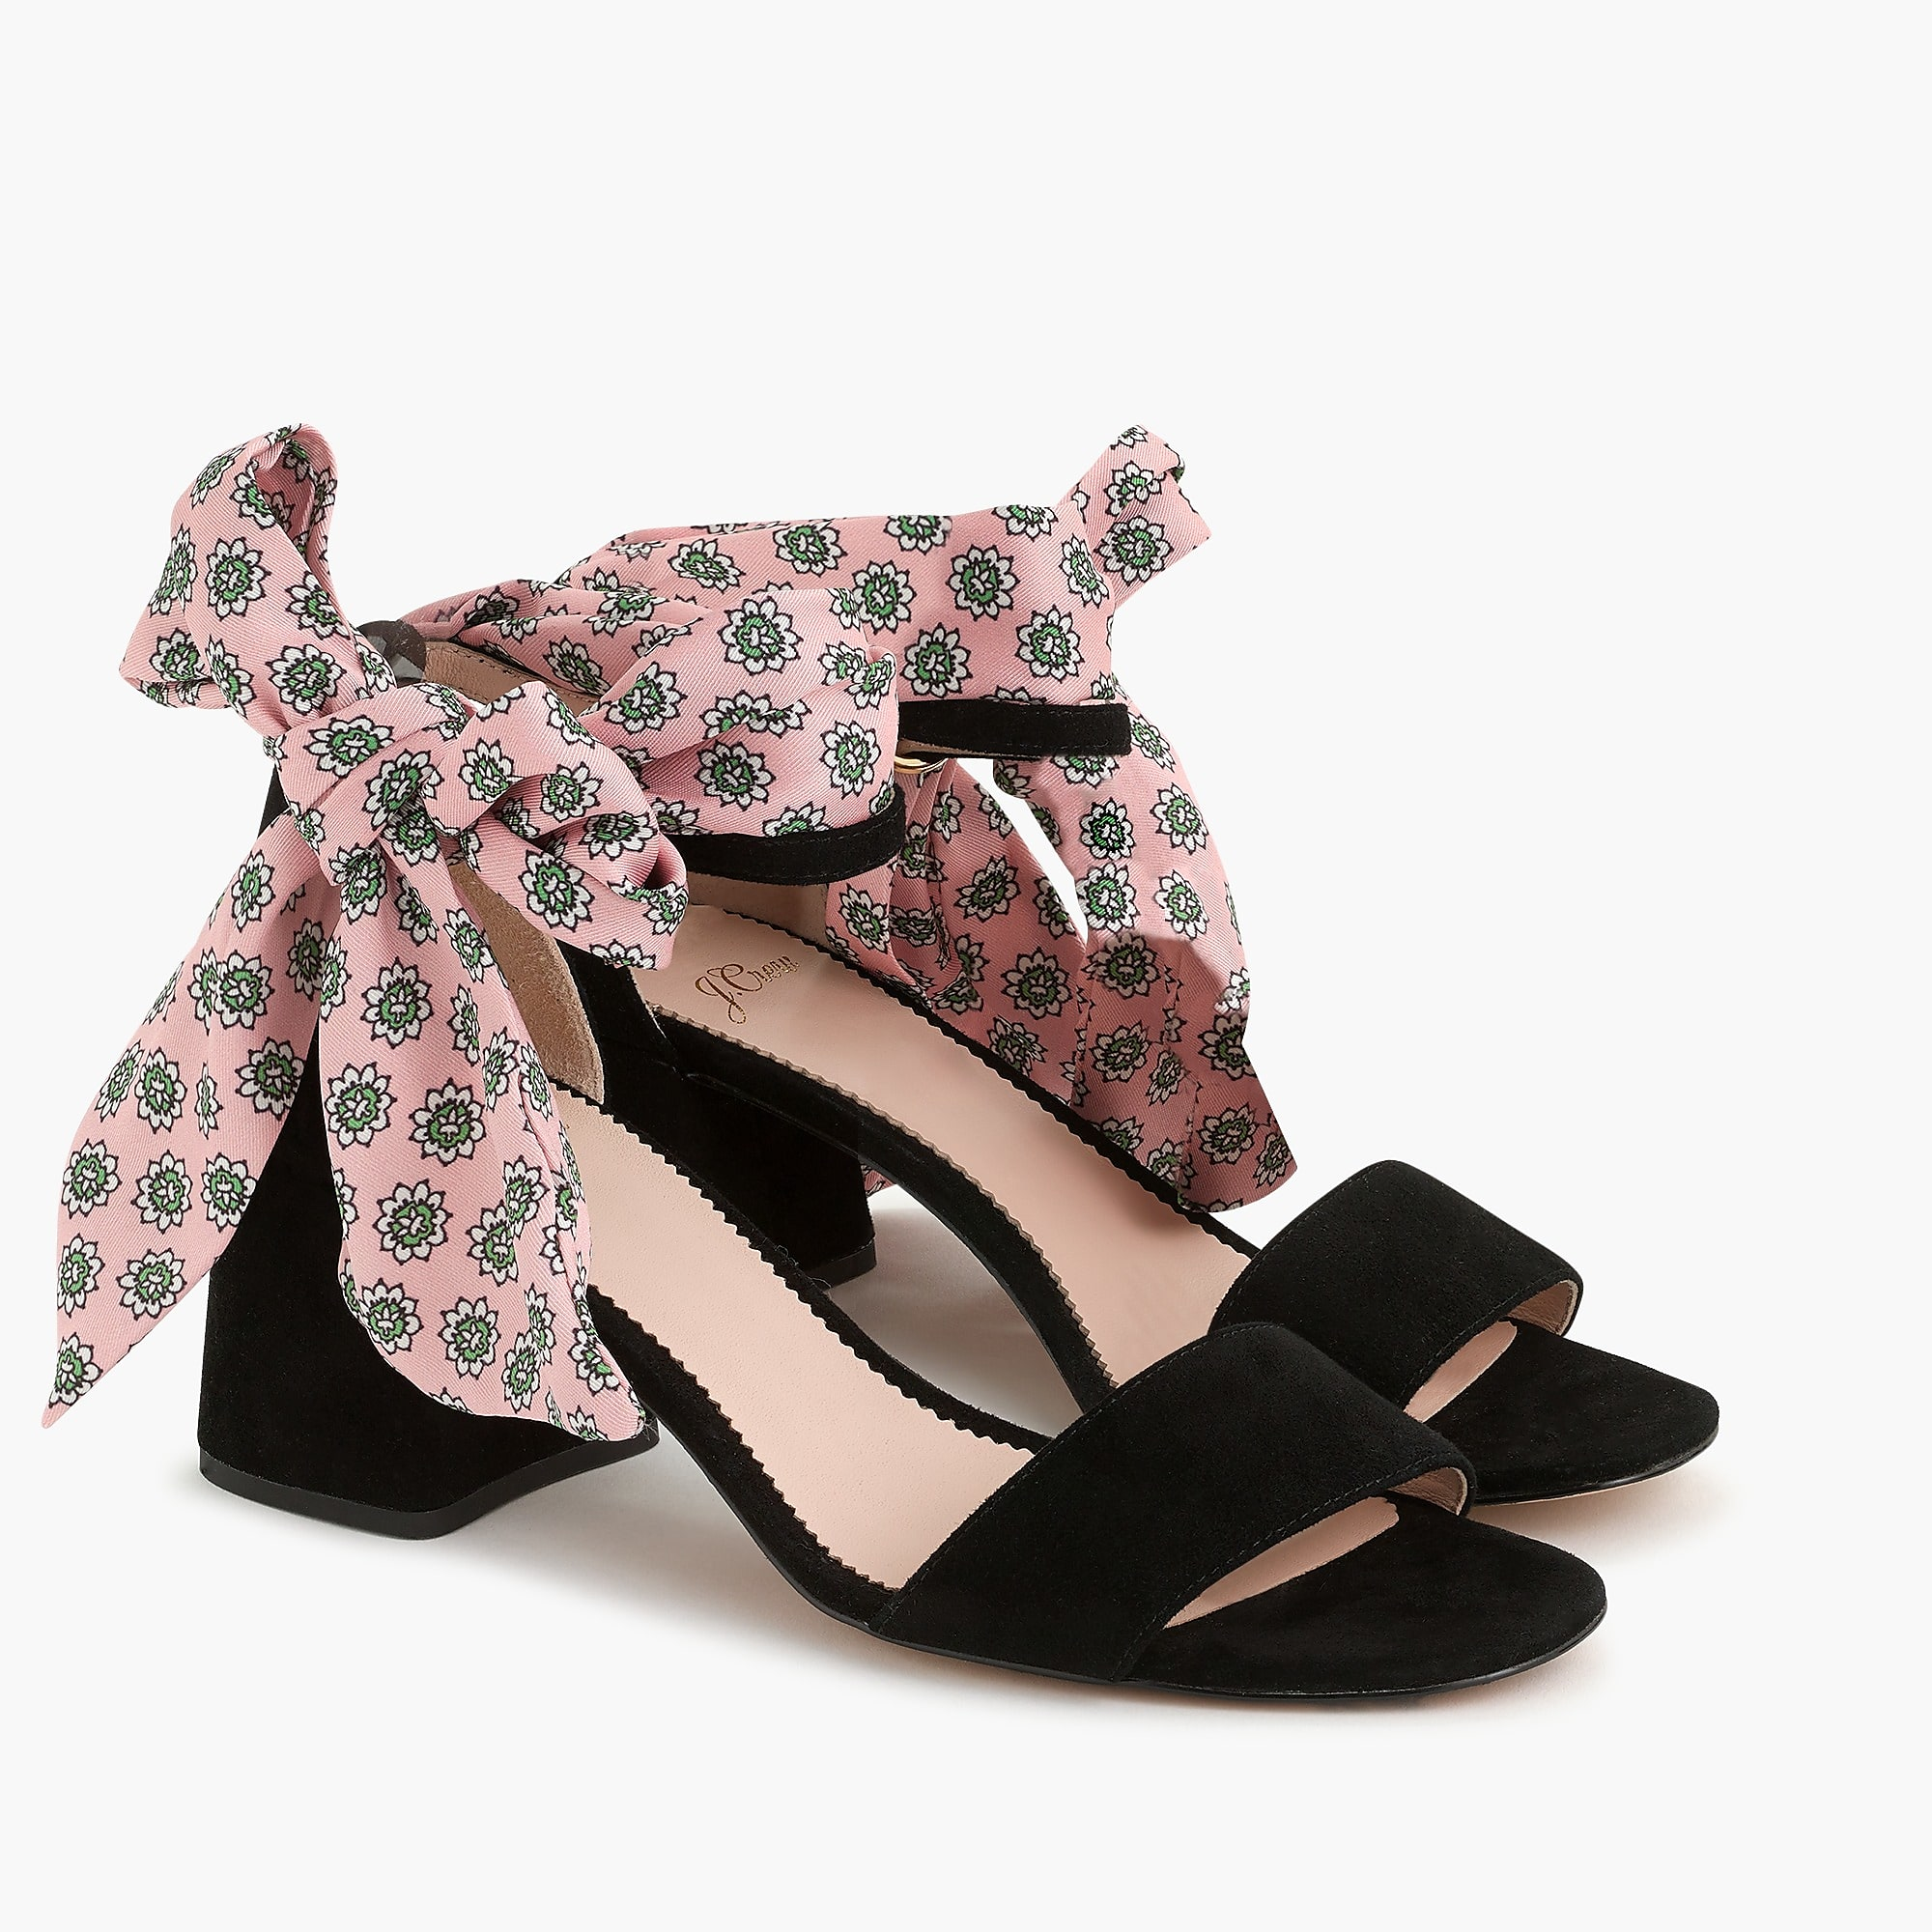 Weekly Finds - J.Crew Penny Ankle Strap Sandals with Scarf Tie